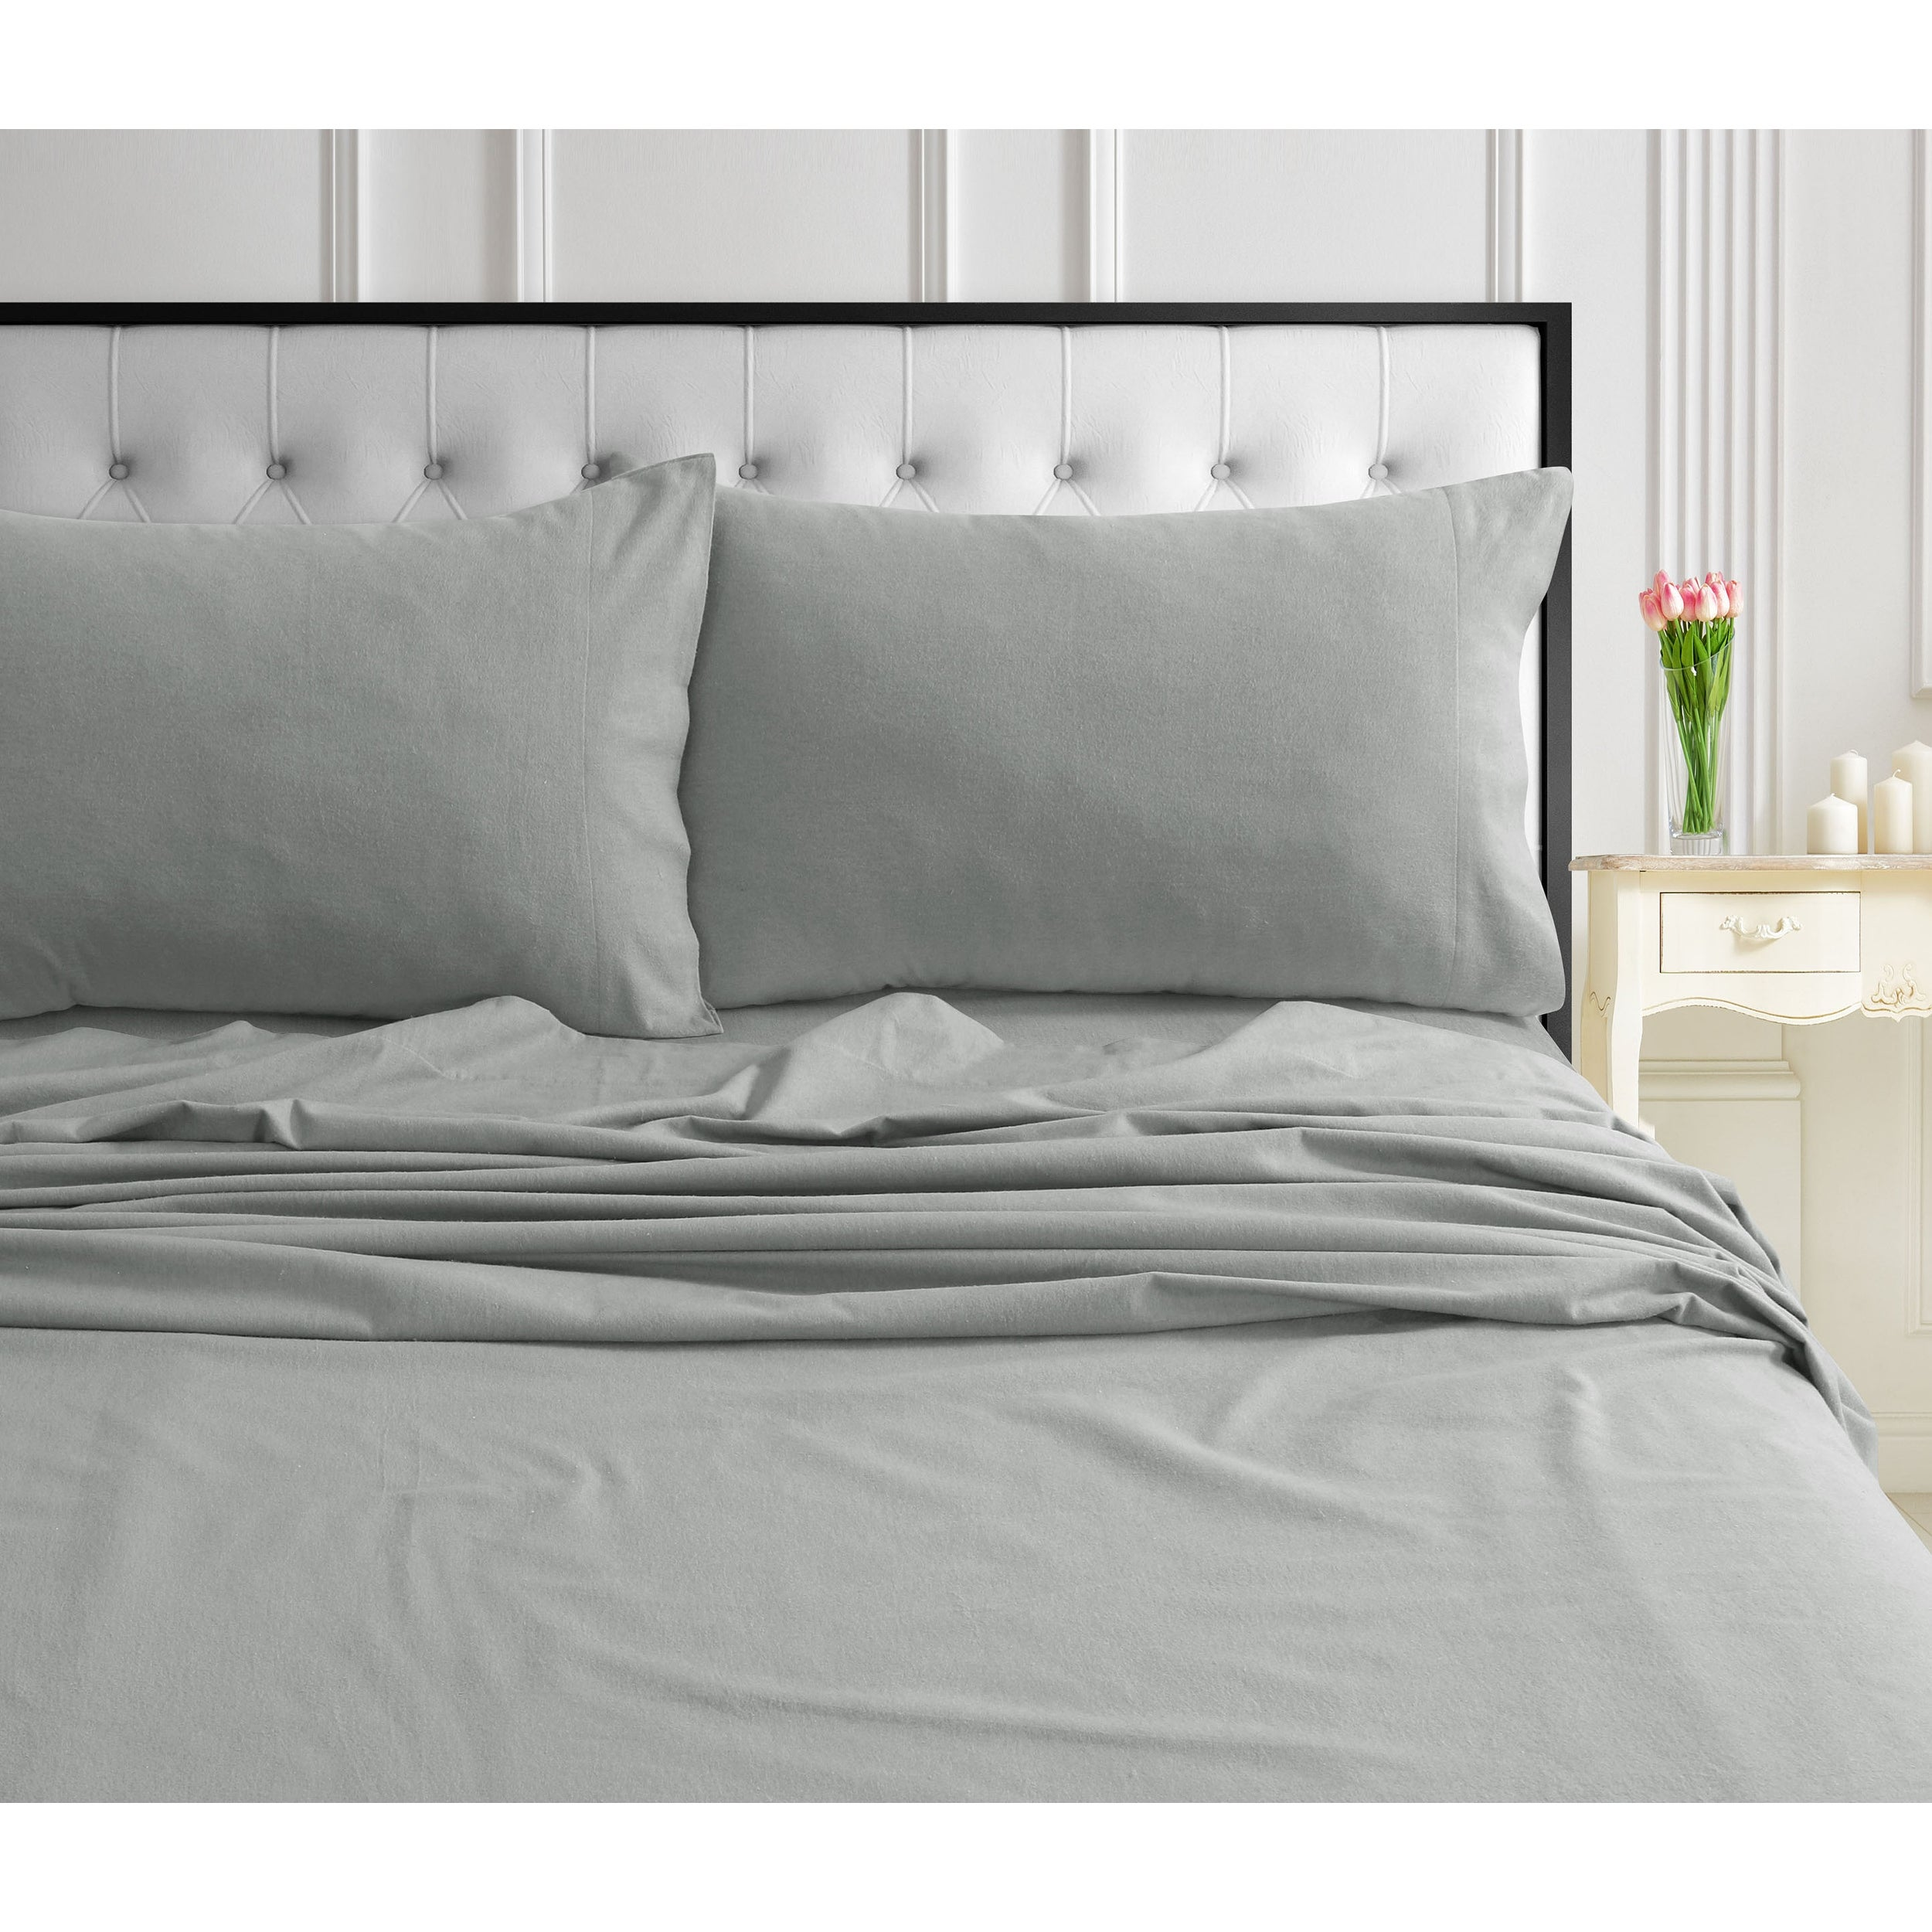 Cozy And Ultra Soft Flannel Deep Pocket Bed Sheet Set With Oversized Flat On Sale Overstock 24030254